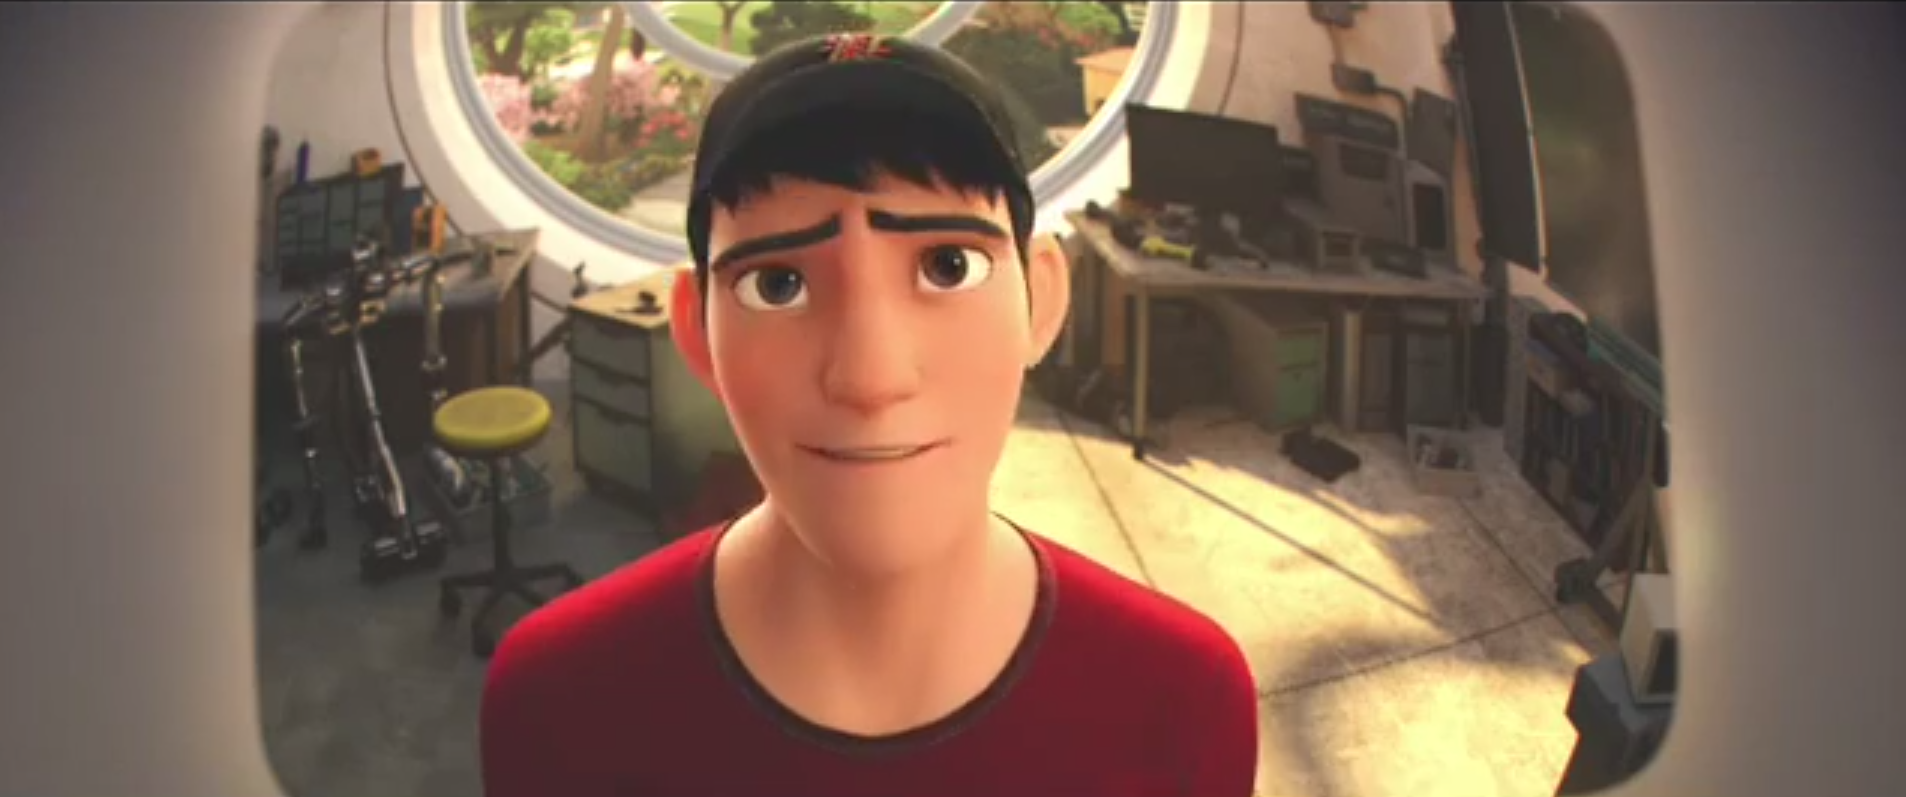 Big hero 6 credits scene they are not only books - Japanese Teaser Trailer Big Hero 6 Tadashi